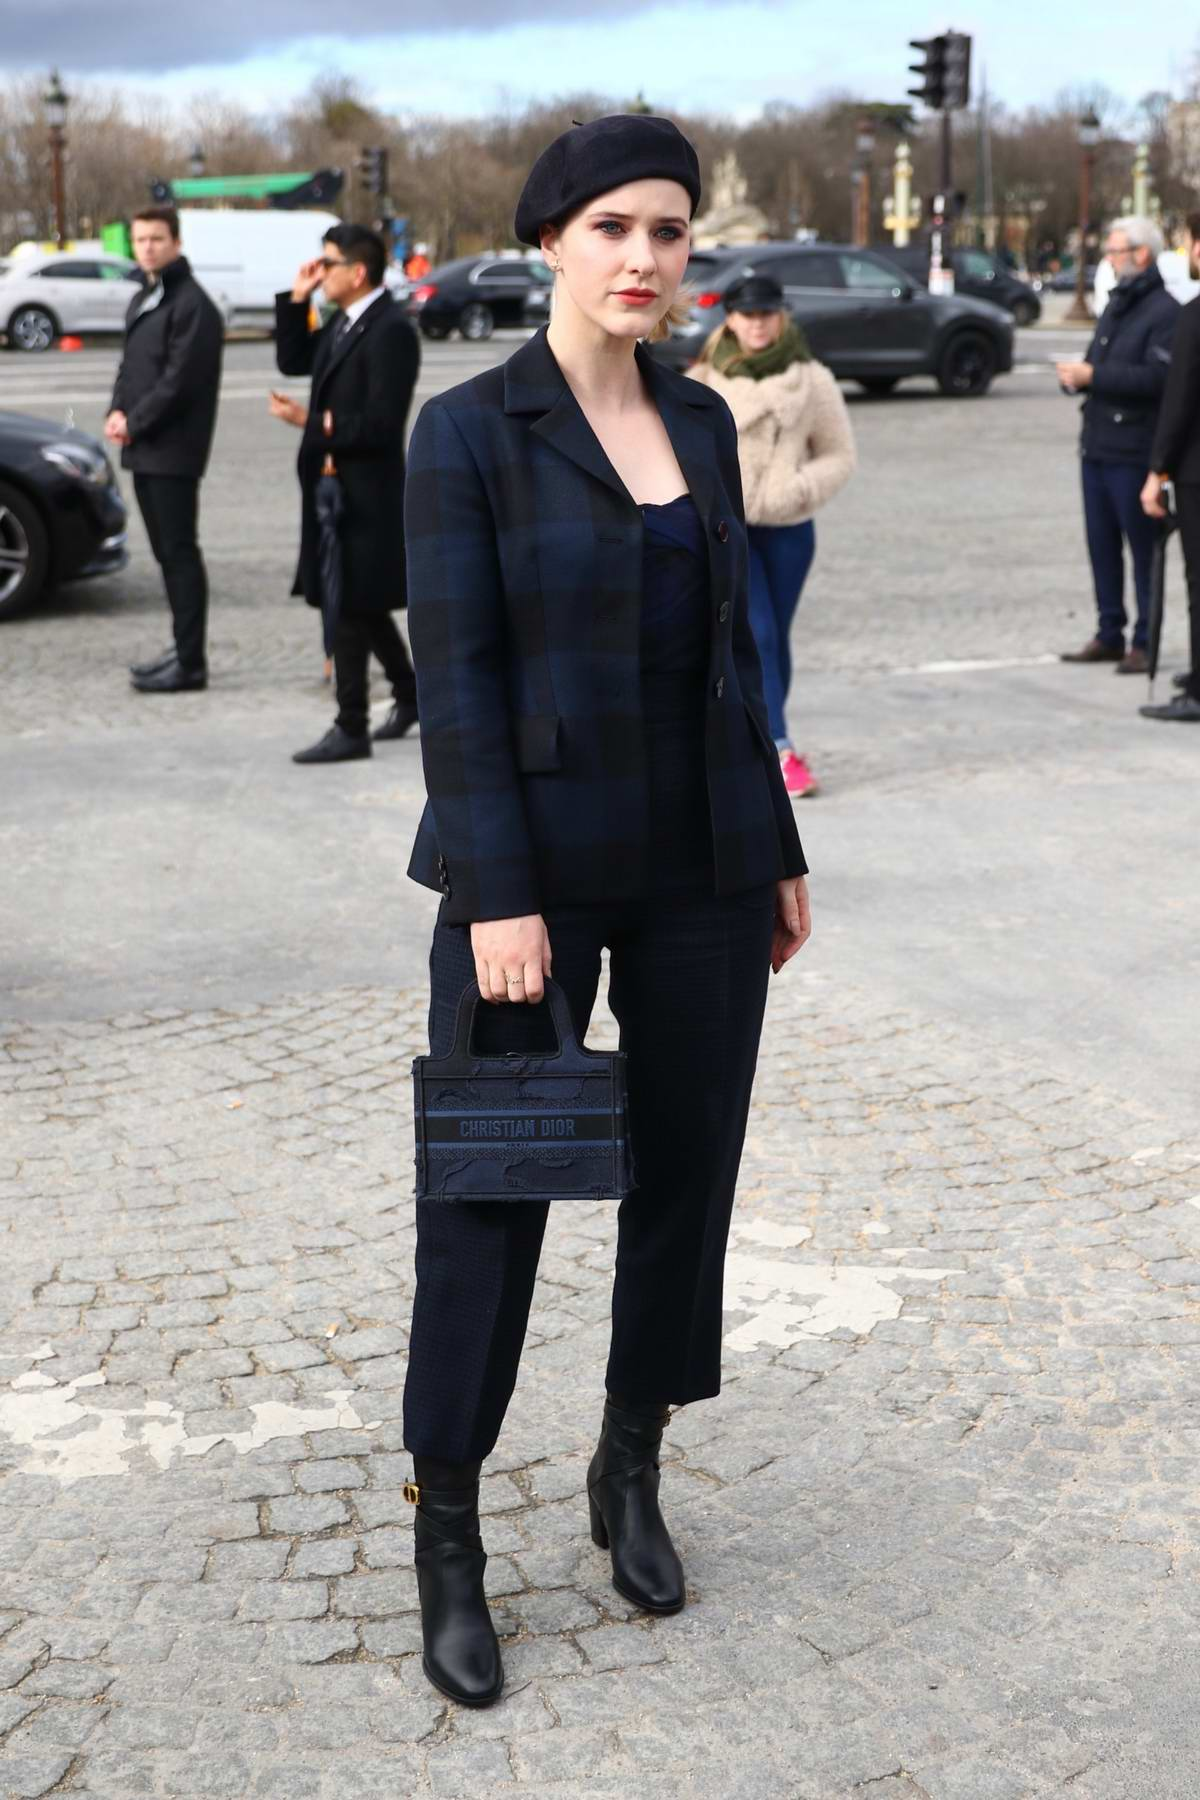 Rachel Brosnahan attends the Dior show, F/W 2020 during Paris Fashion Week in Paris, France